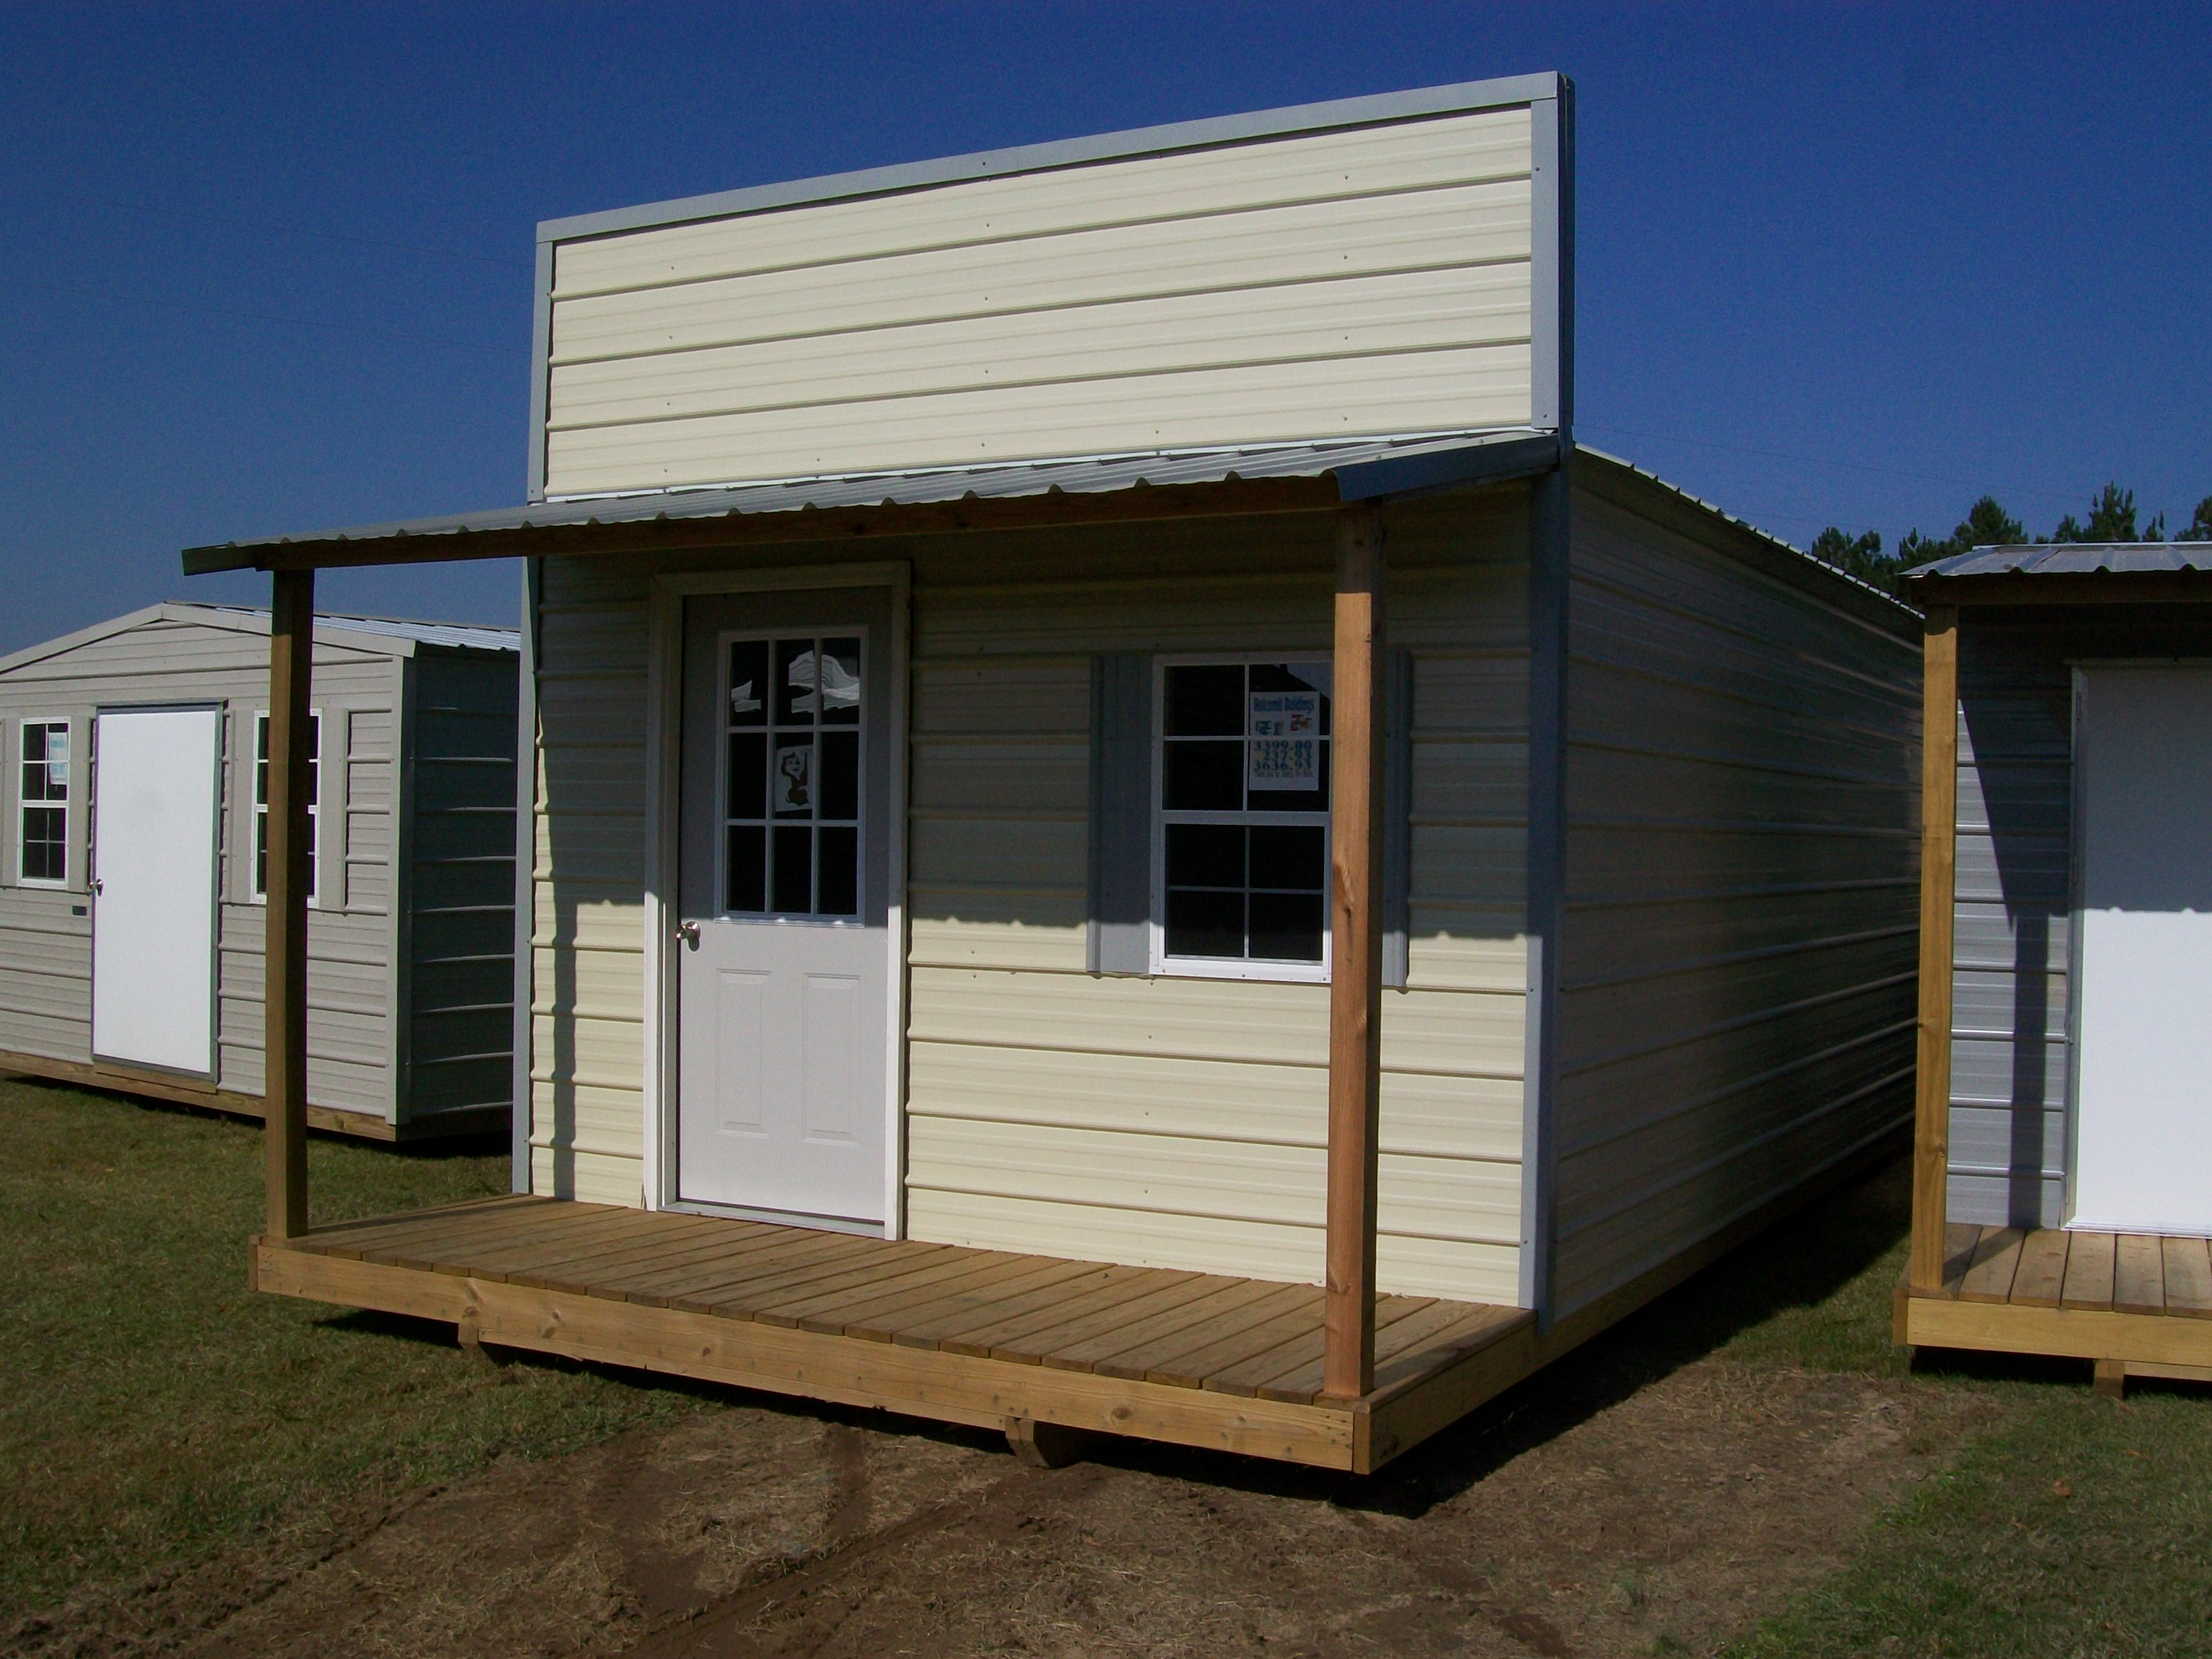 Storage sheds with front porches image for Shed with porch